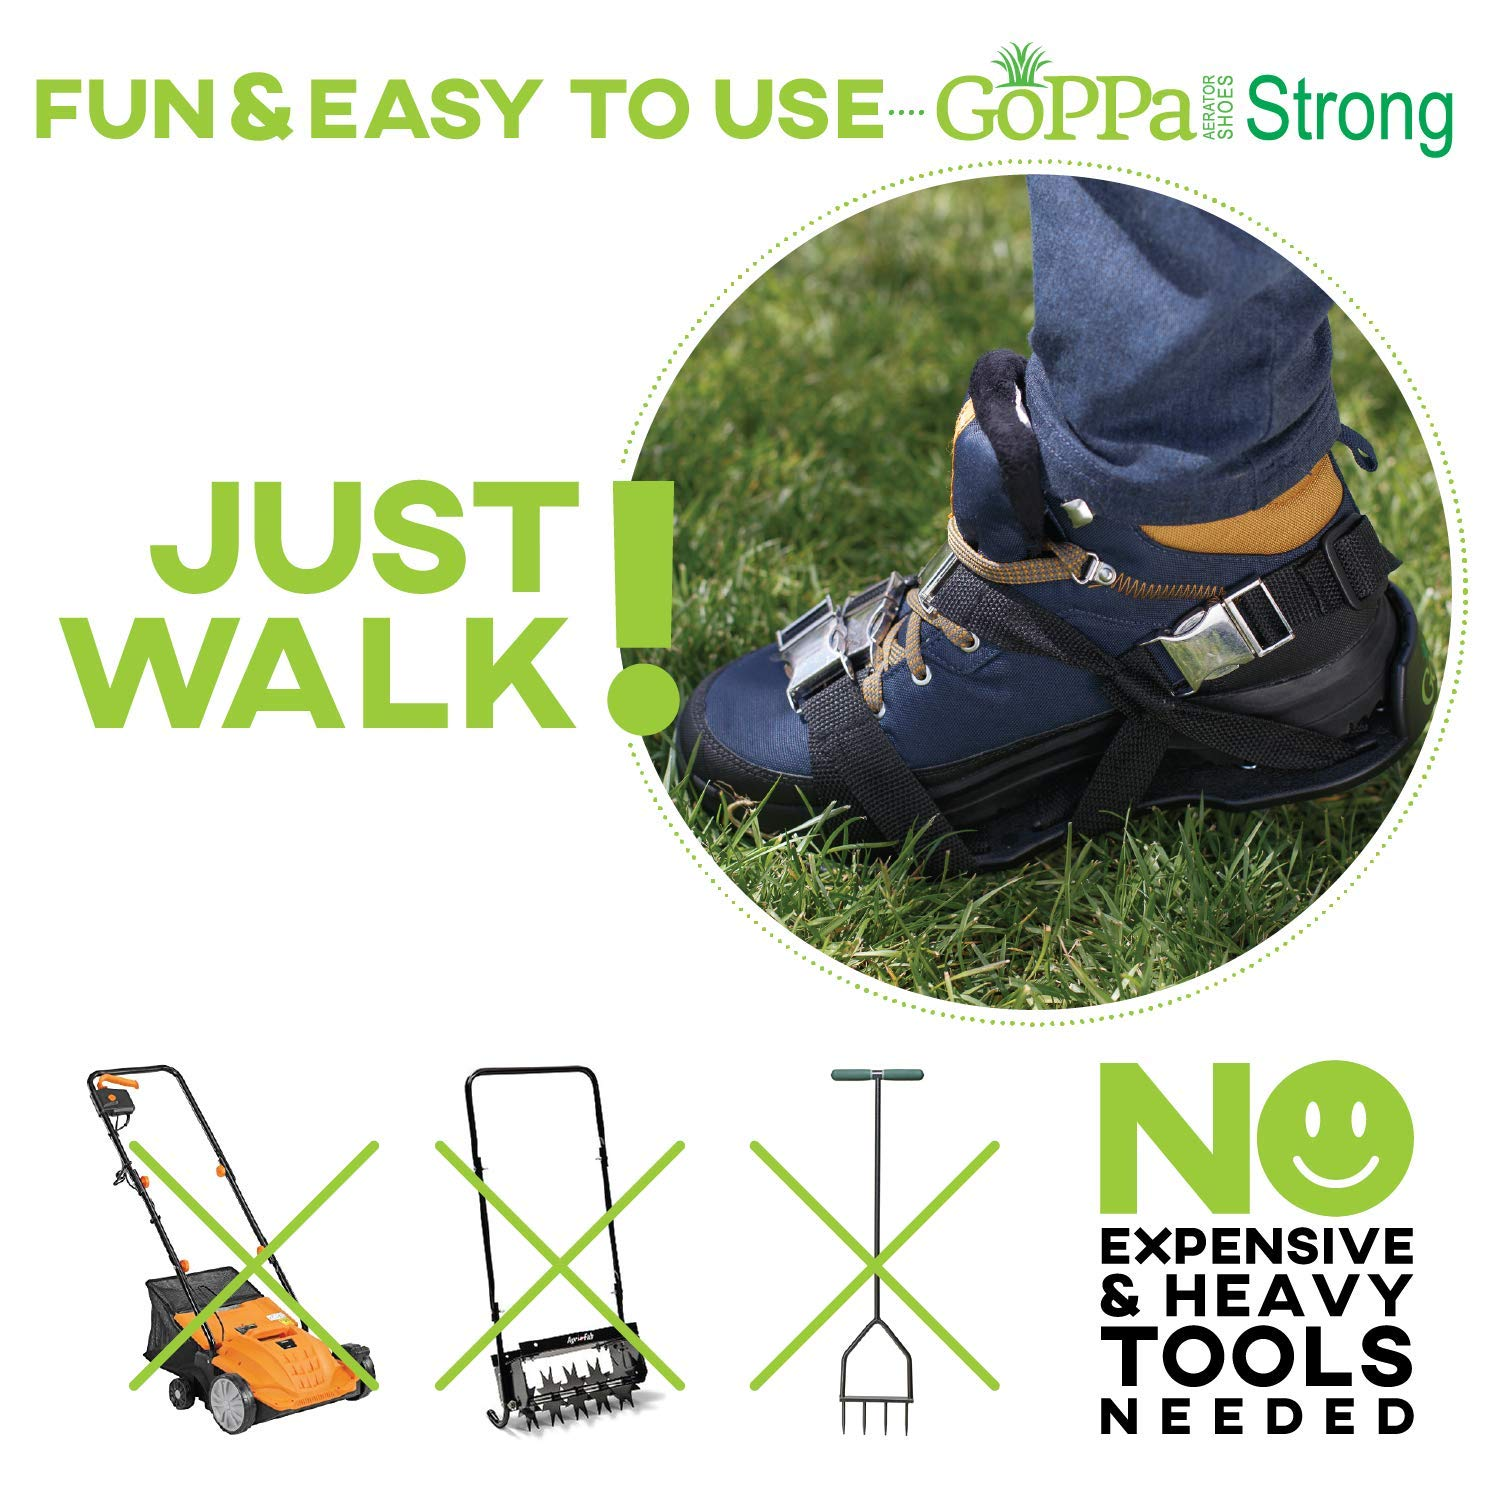 GoPPa Lawn Aerator Shoes – Heavy Duty Lawn Aerator Sandal, You only FIT Once. Ready for aerating Your Yard, Lawn, Roots & Grass – Strong Design by GoPPa (Image #3)